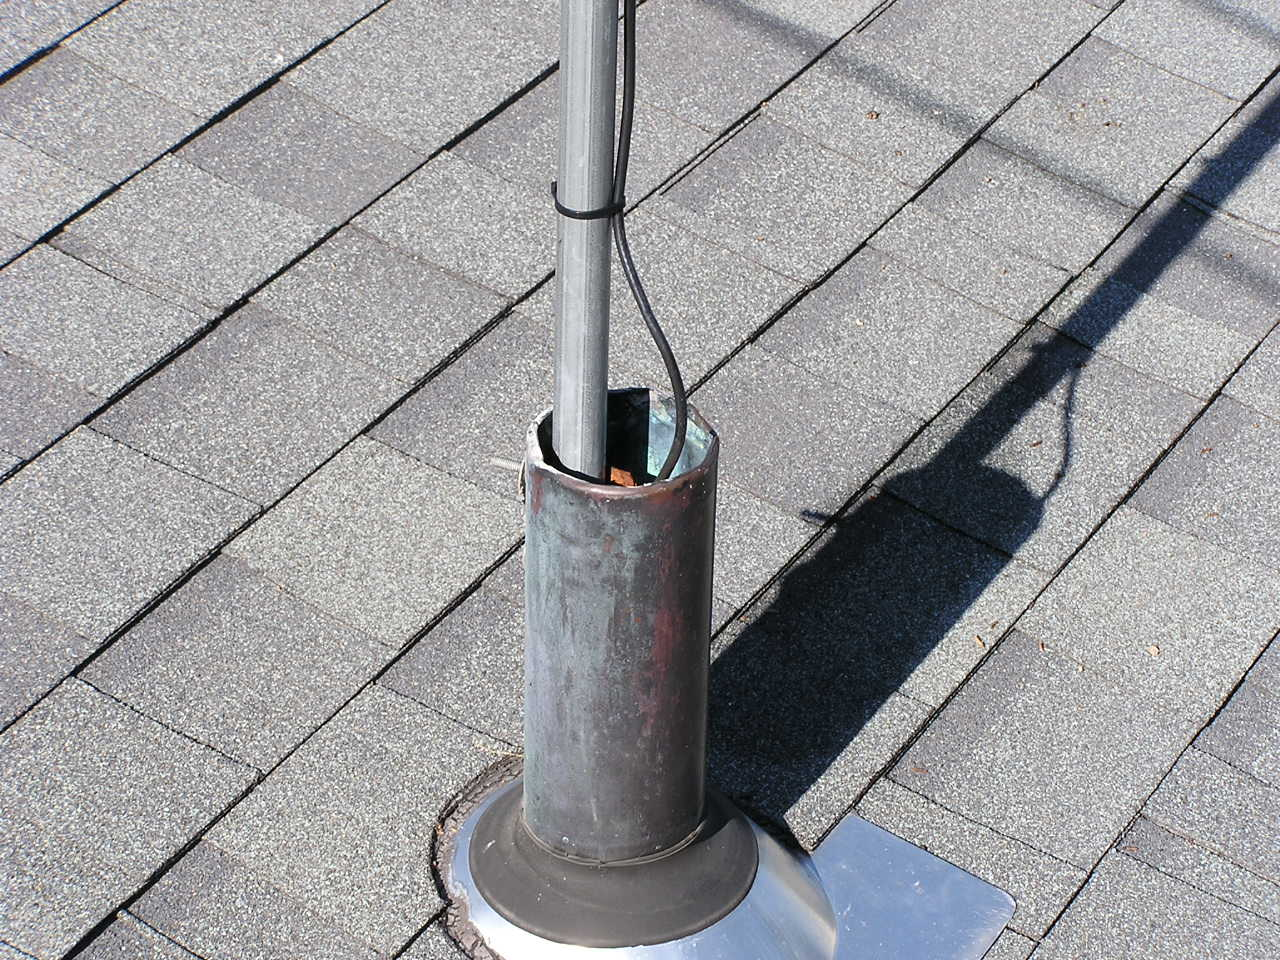 Roof mounting a 2-meter J-pole antenna on a vent pipe | QRZ